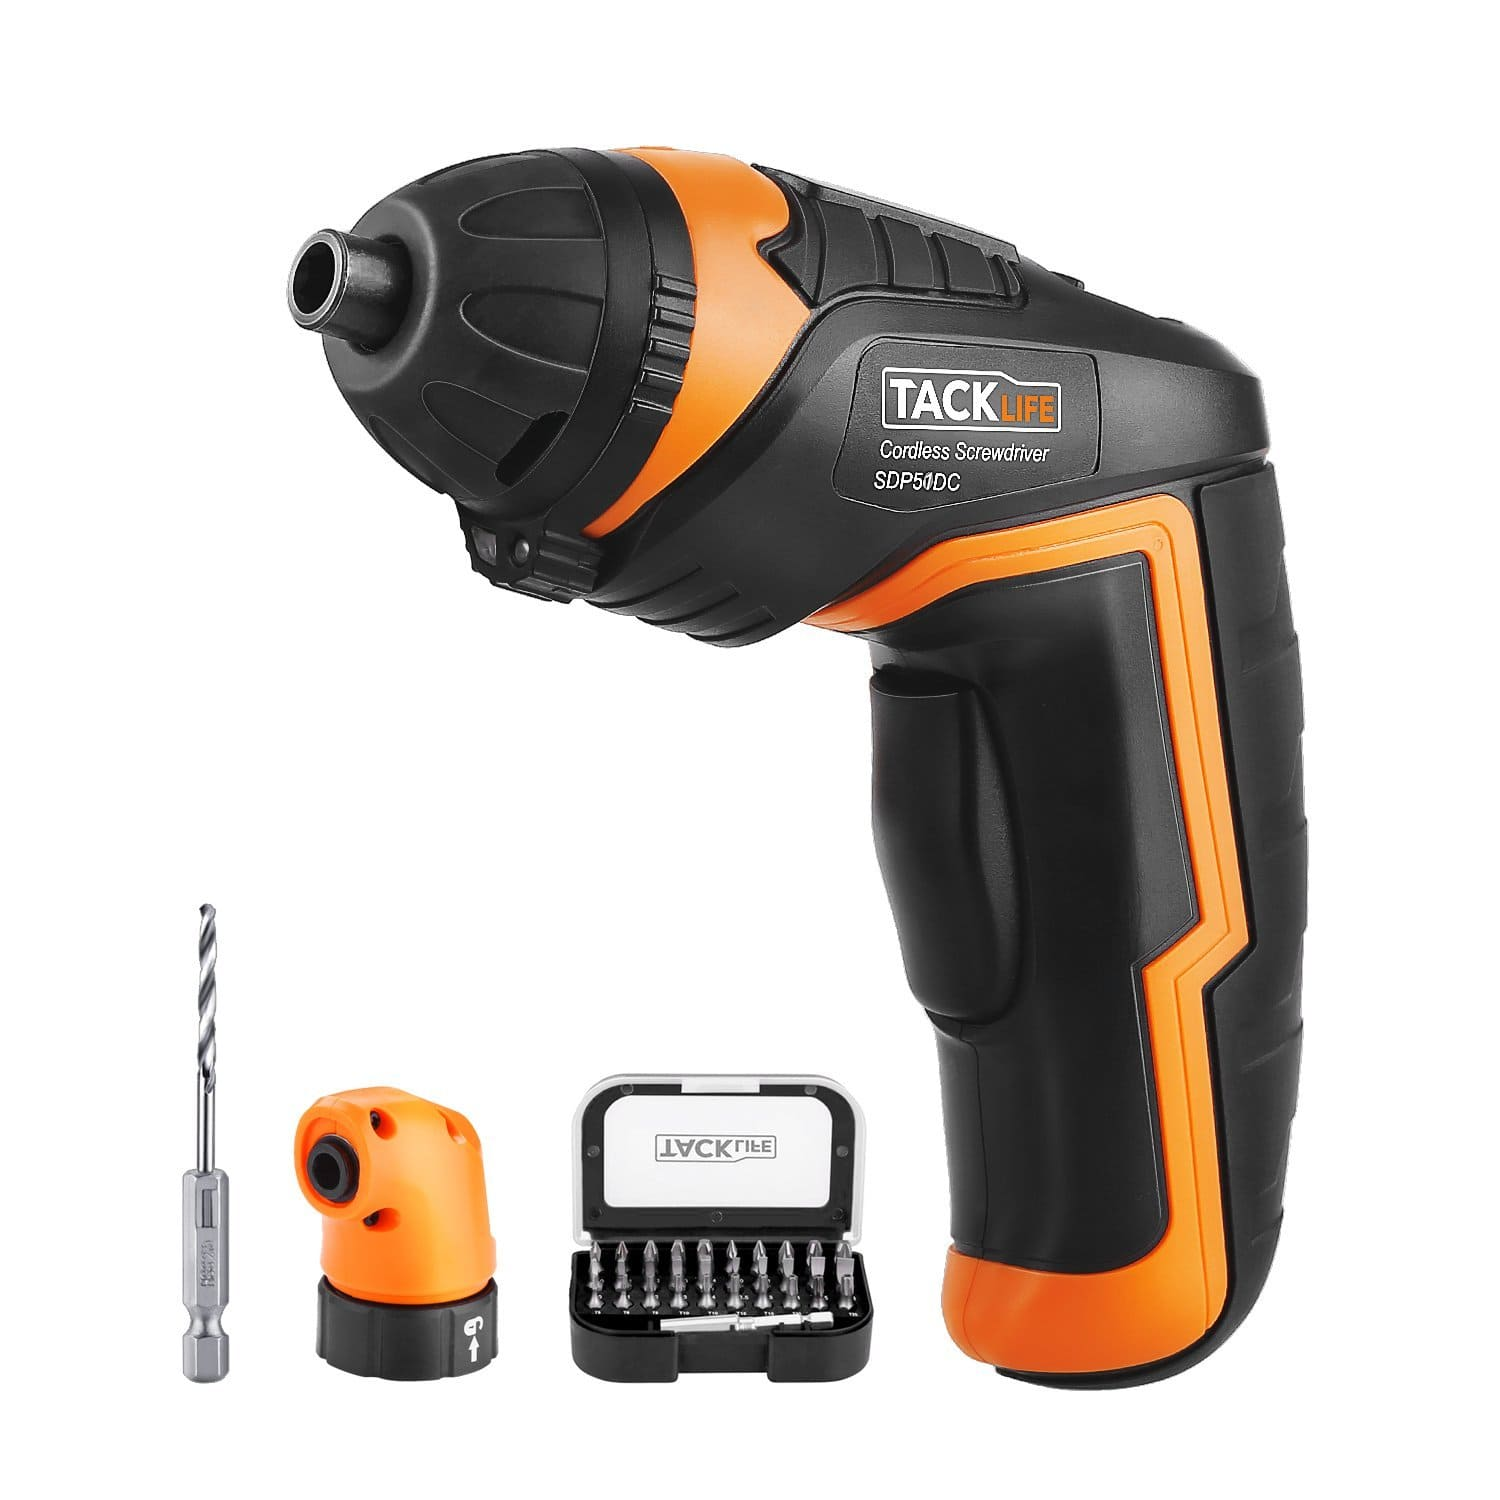 Tacklife SDP51DC Cordless Rechargeable Screwdriver 3.6-Volt for $24.73